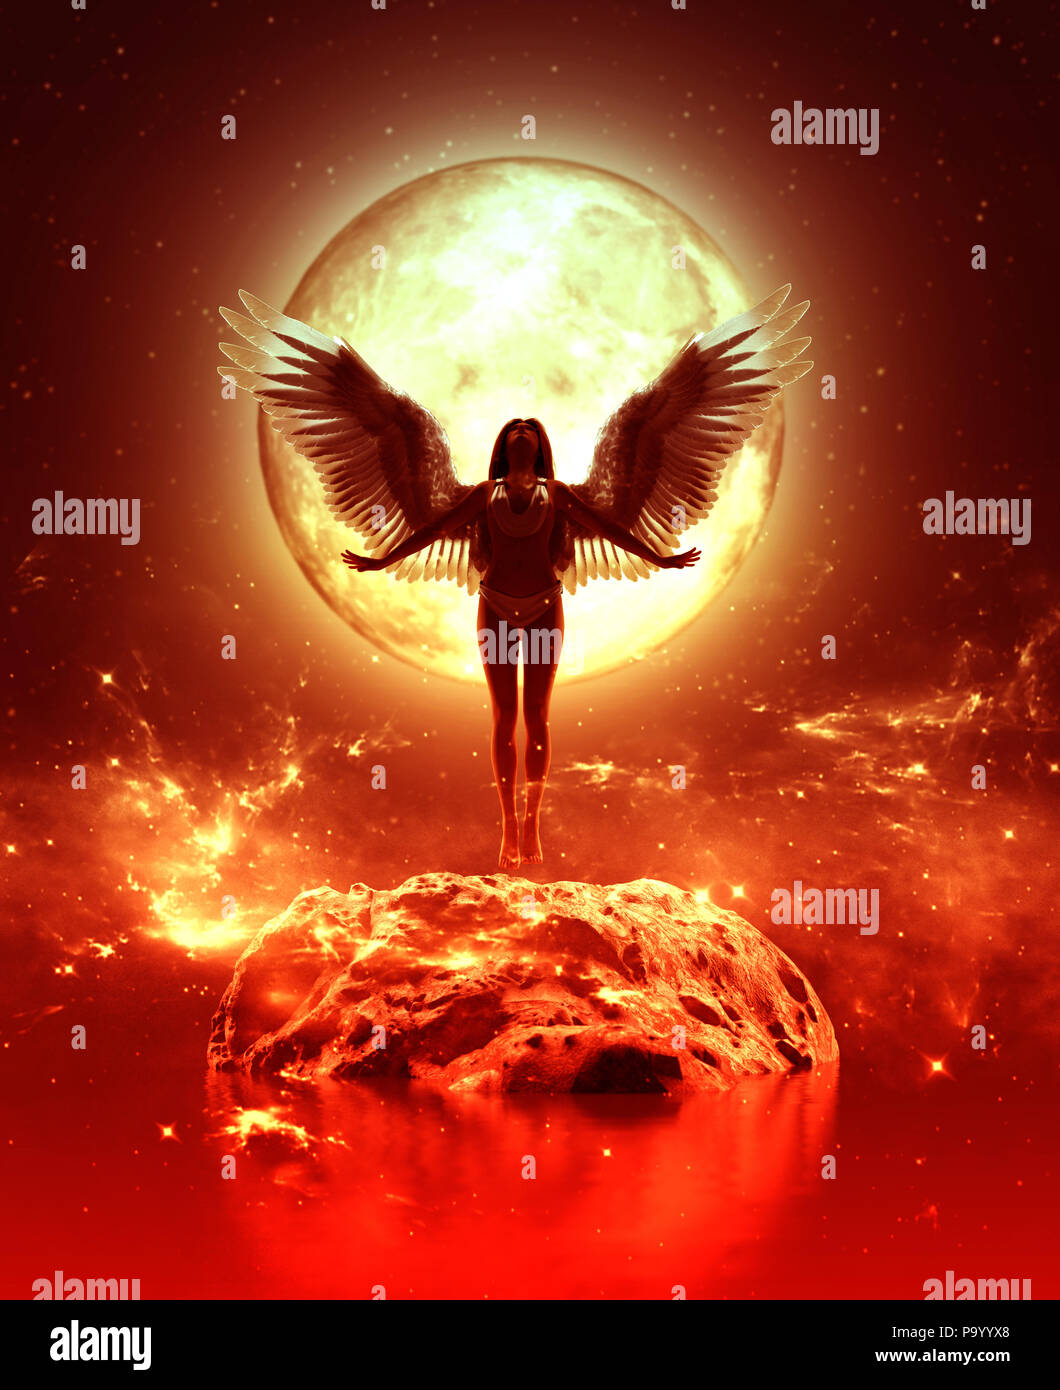 3d illustration of an Angel in heaven land,Mixed media for book illustration or book cover - Stock Image